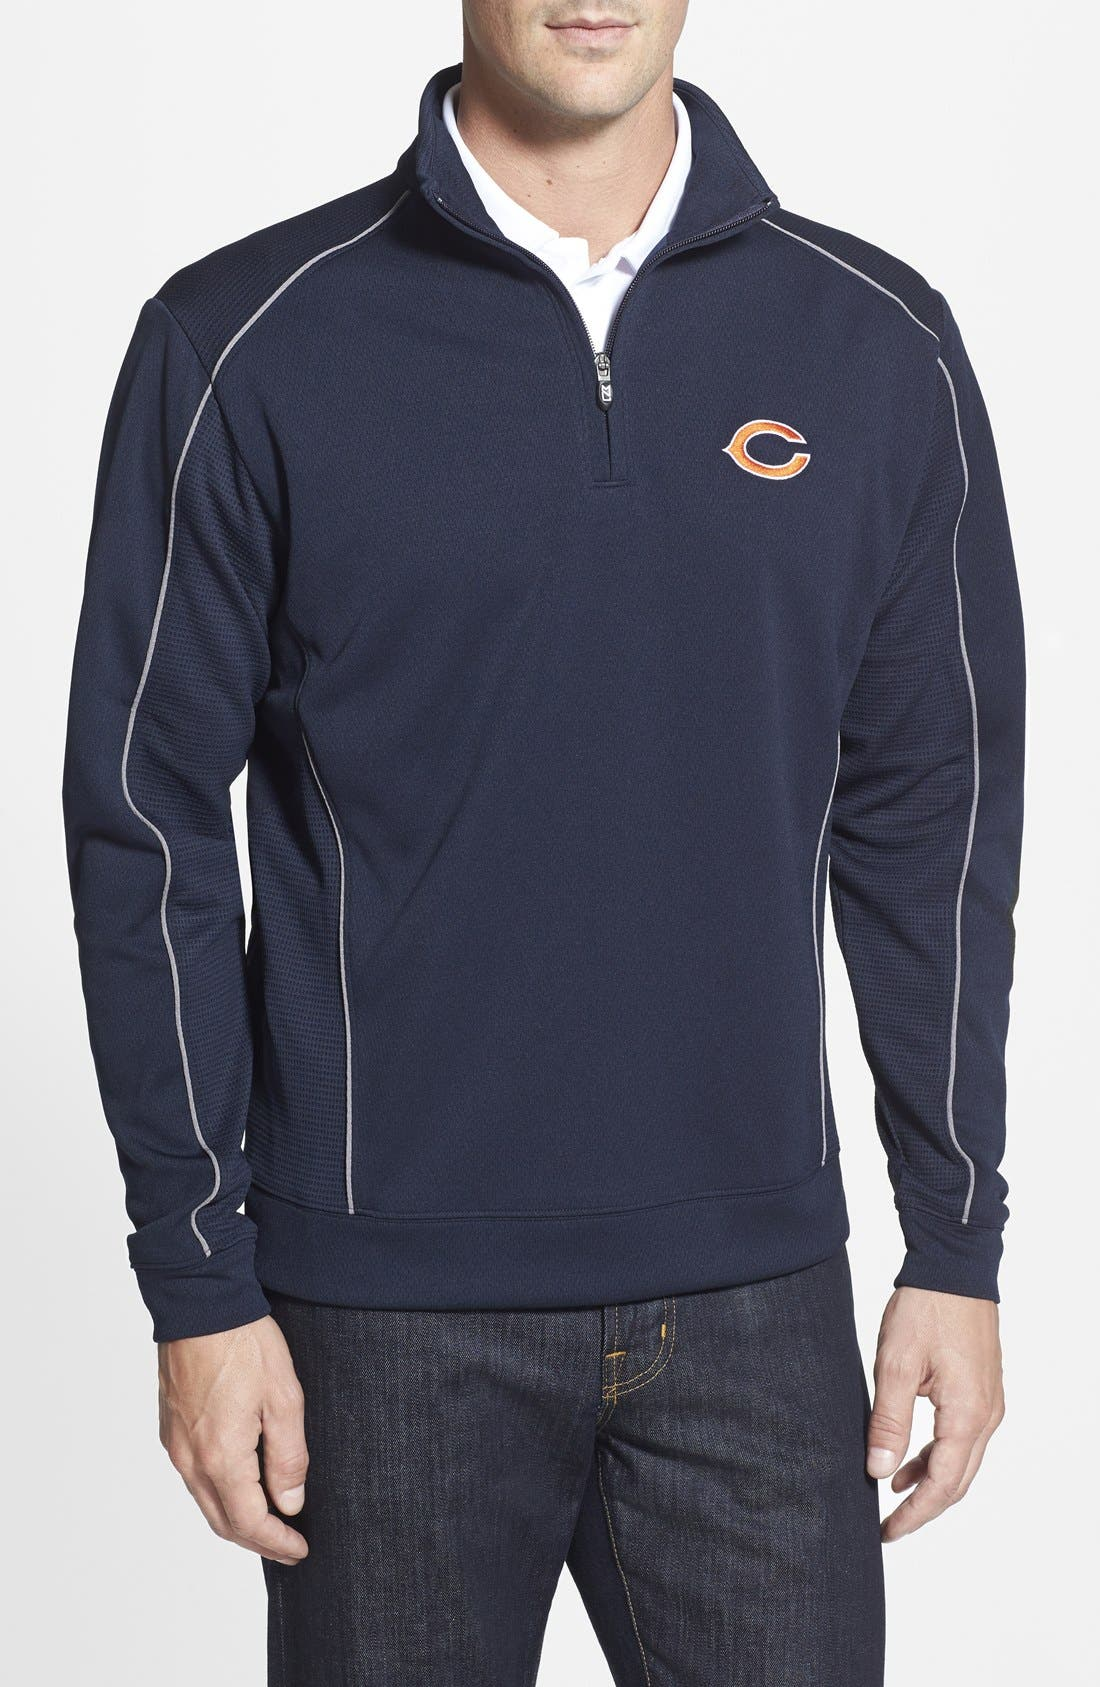 Cutter & Buck 'Chicago Bears - Edge' DryTec Moisture Wicking Half Zip Pullover (Big & Tall)